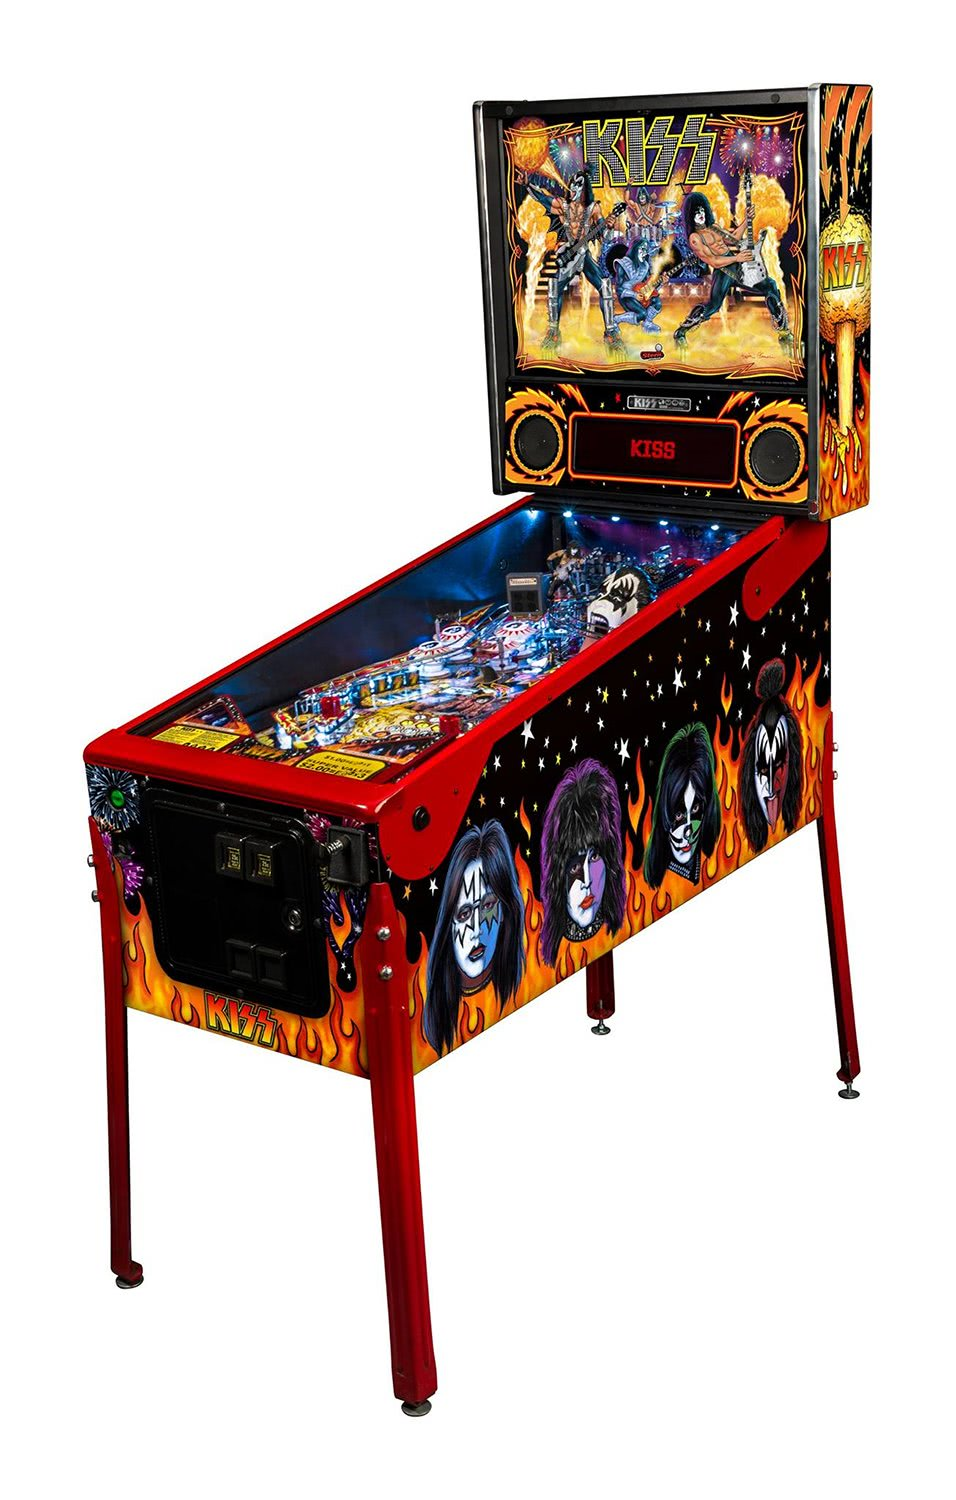 op pop pop pinball machine